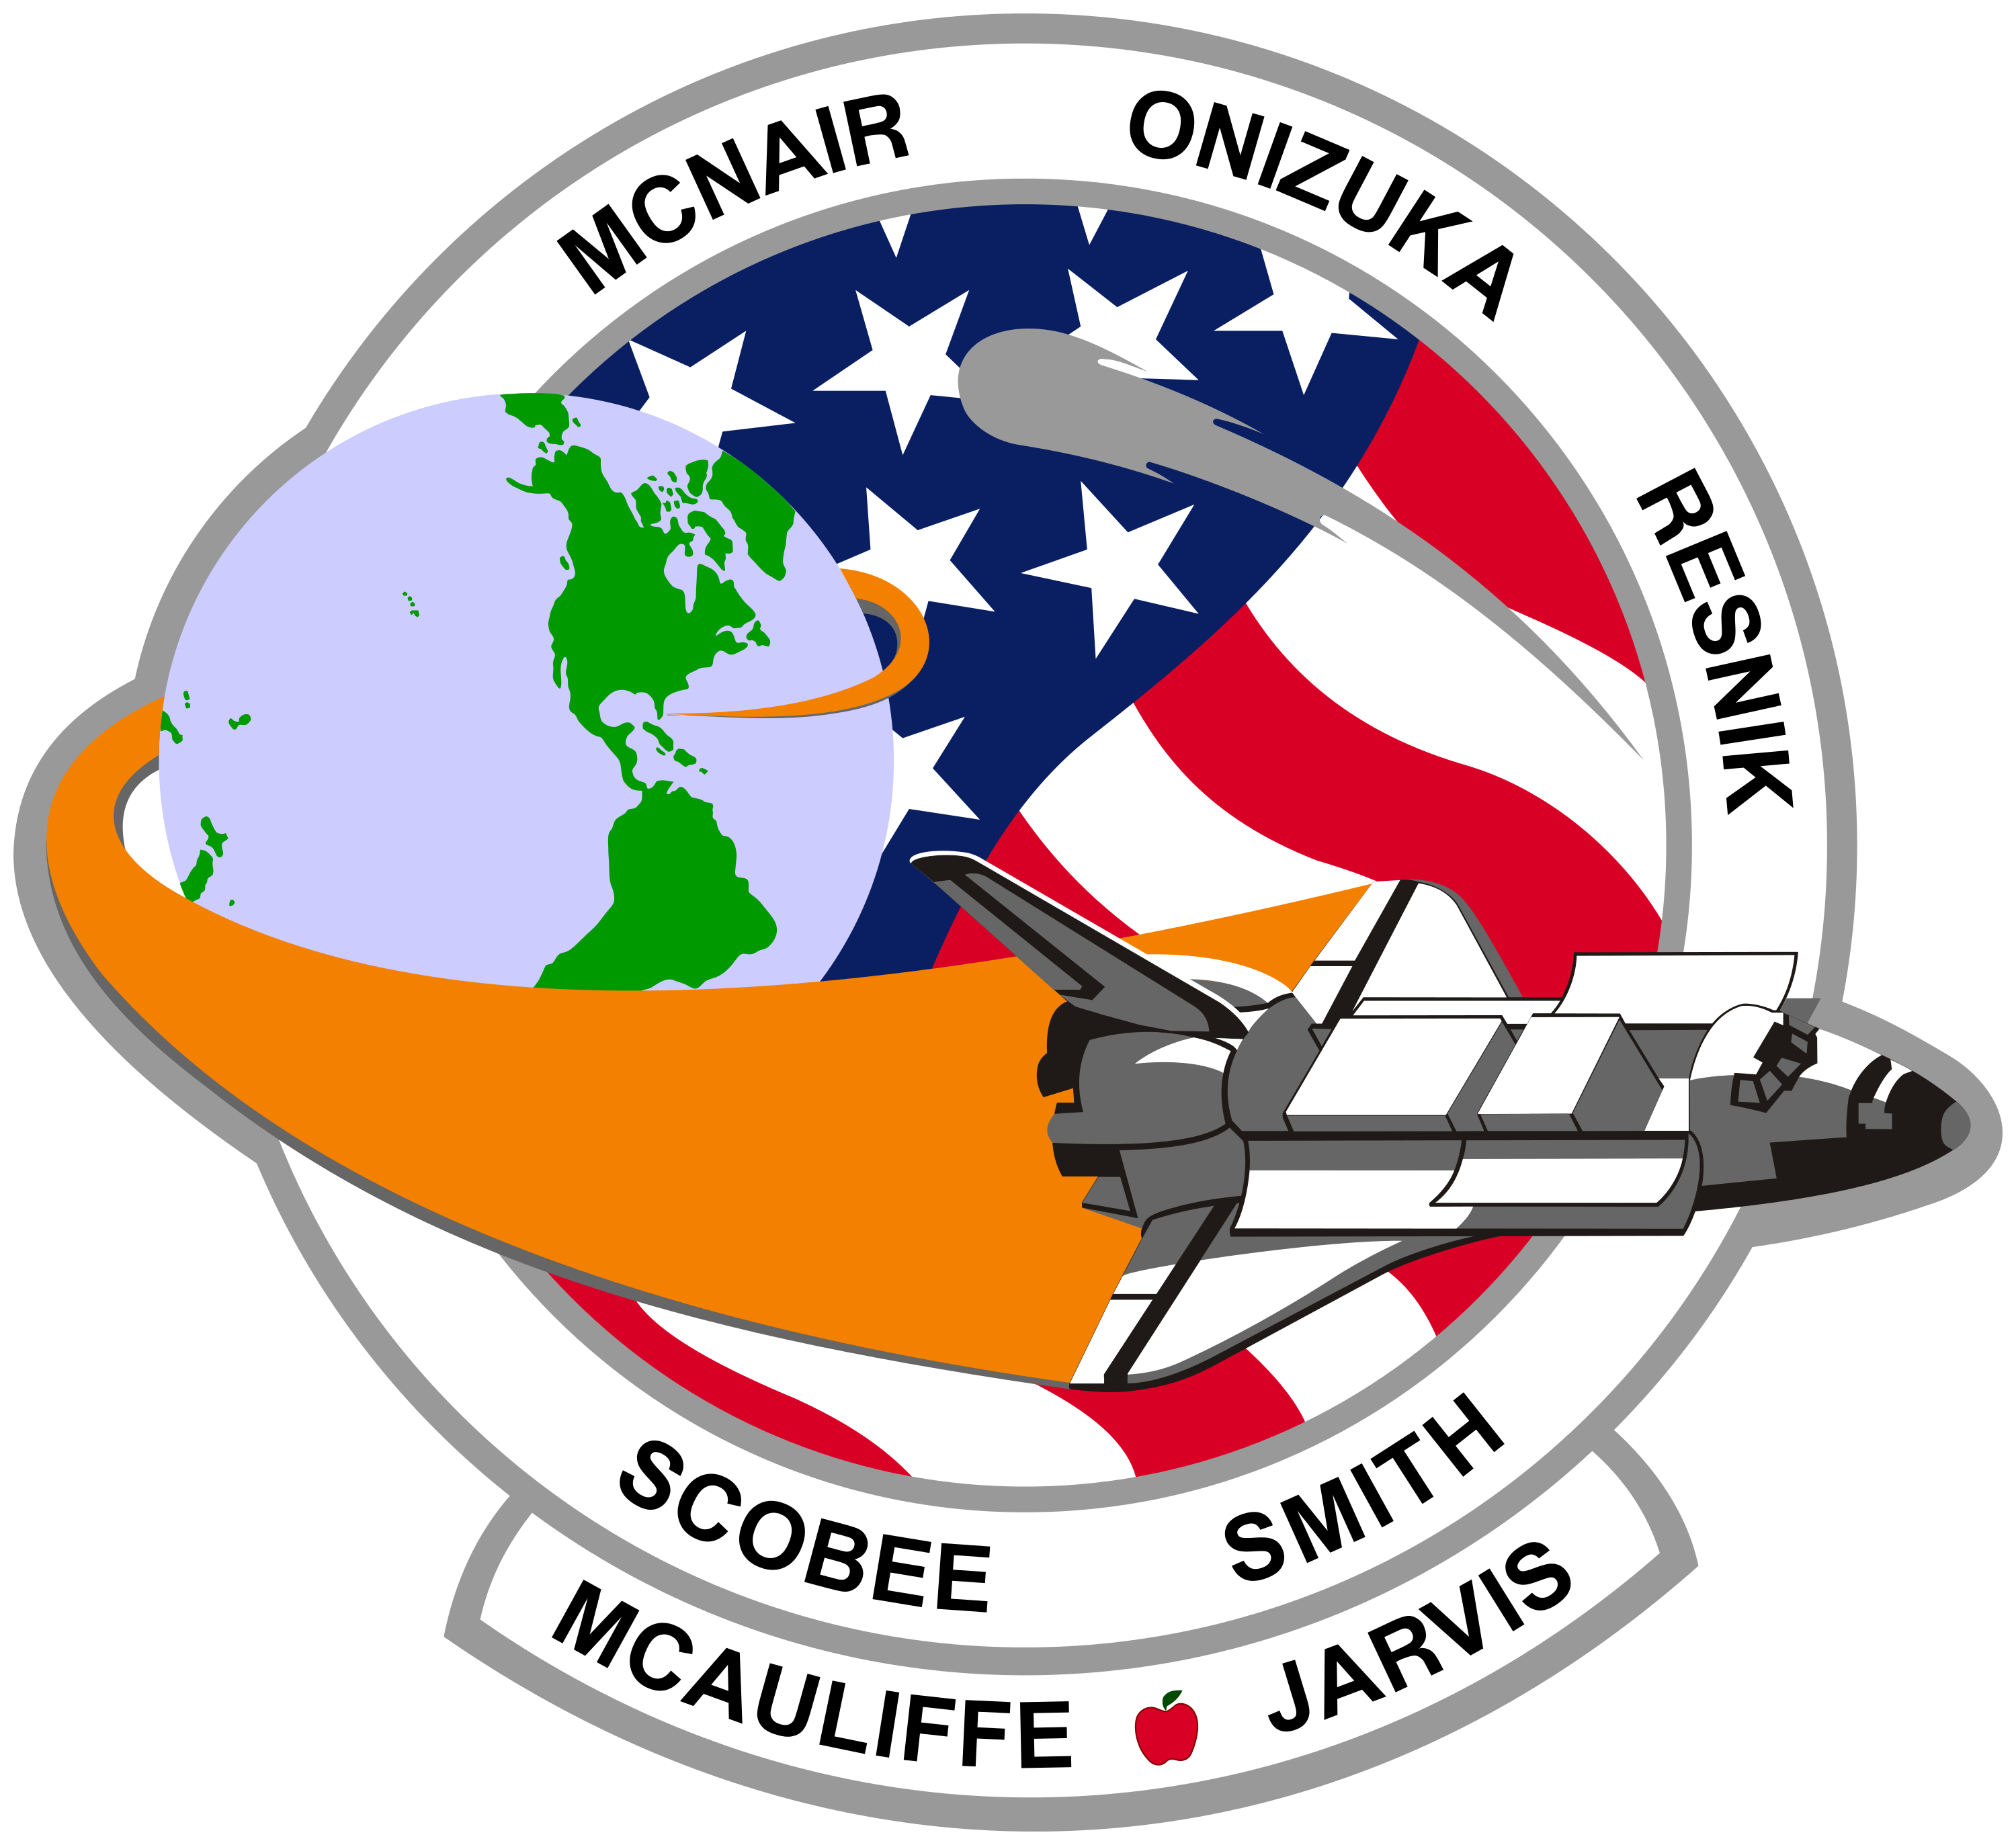 NASA SPACE SHUTTLE DISCOVERY STS51 MISSION PATCH NEW WITHOUT TAGS